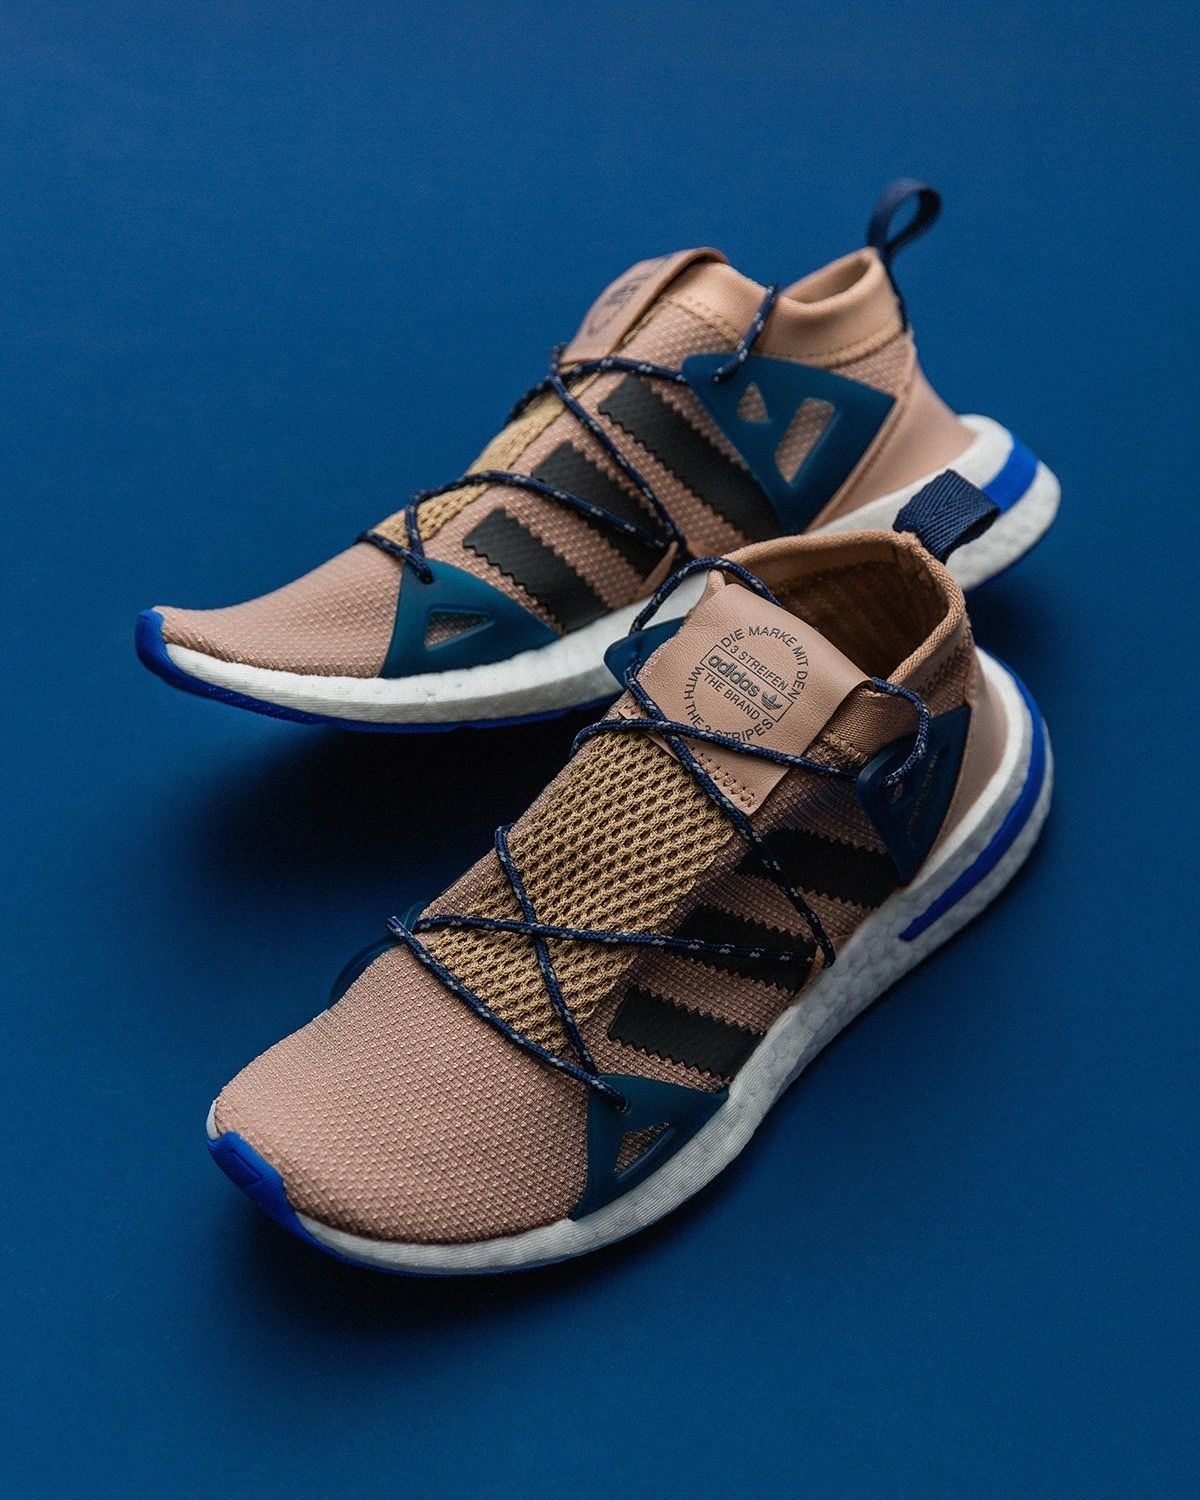 adidas Originals Arkyn Baskets Pinterest Adidas, Originals